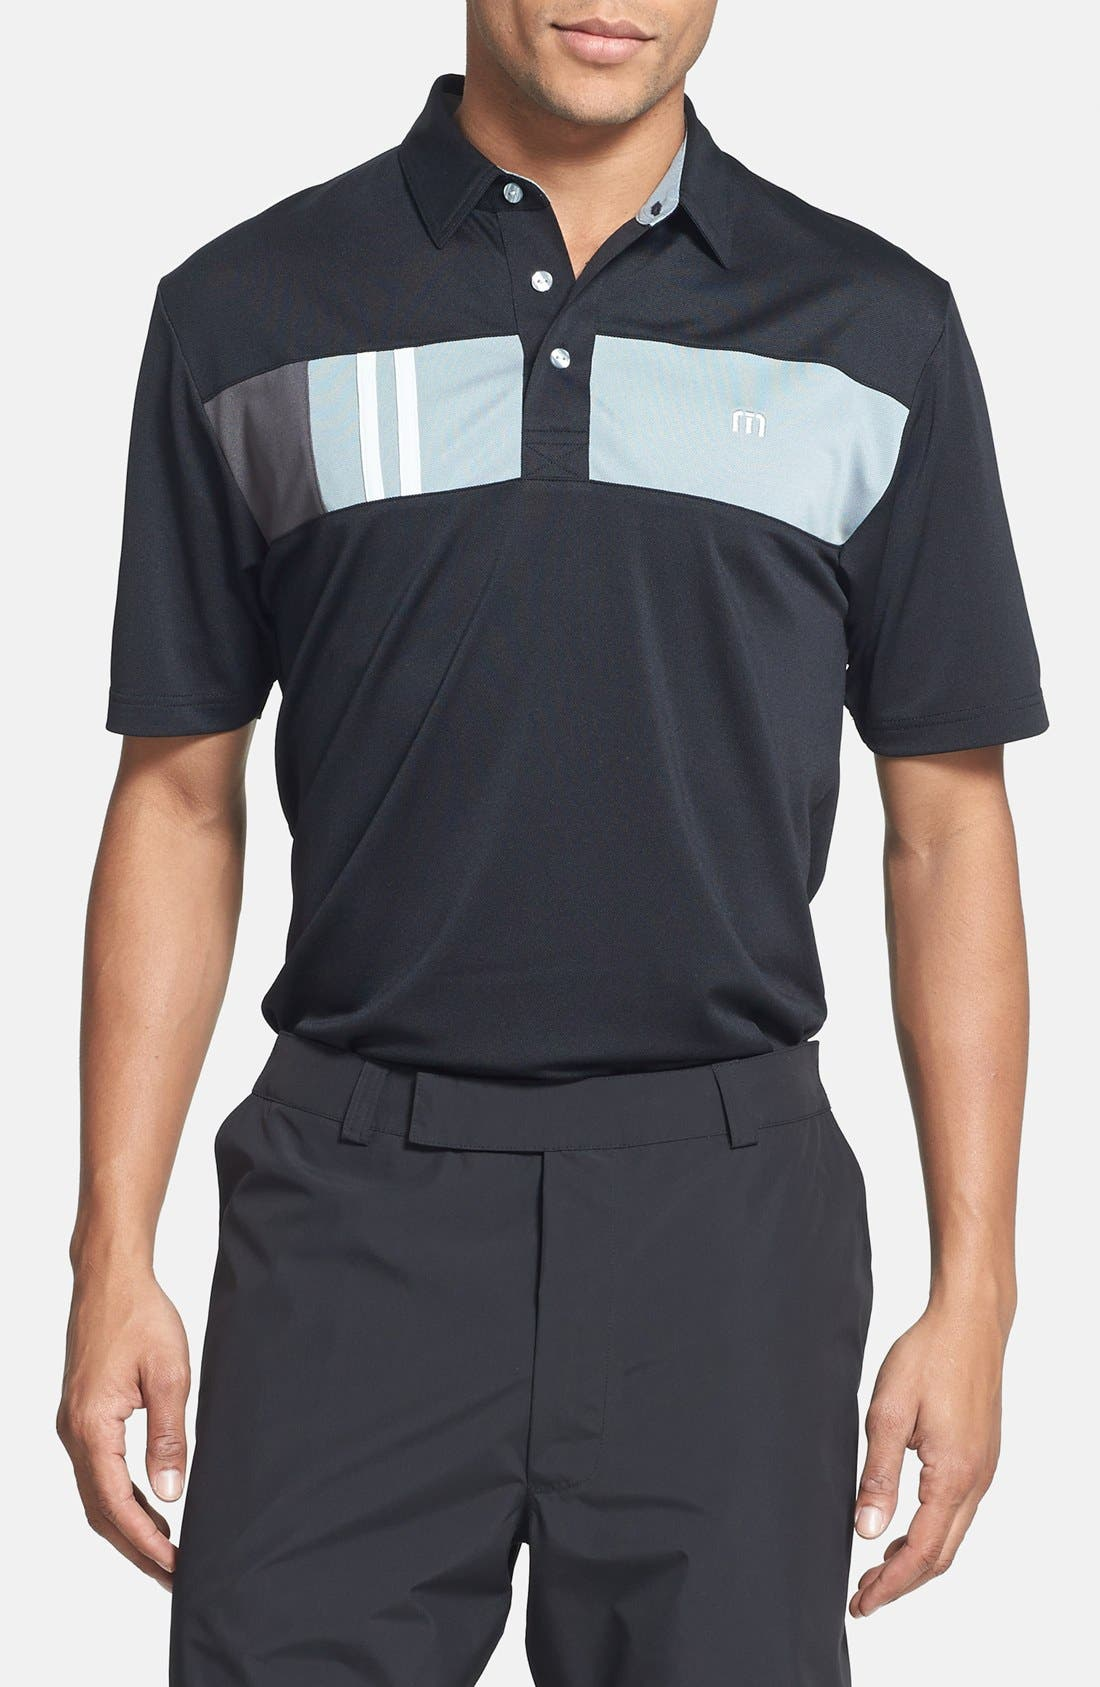 Main Image - Travis Mathew 'Kloss' Trim Fit Golf Polo